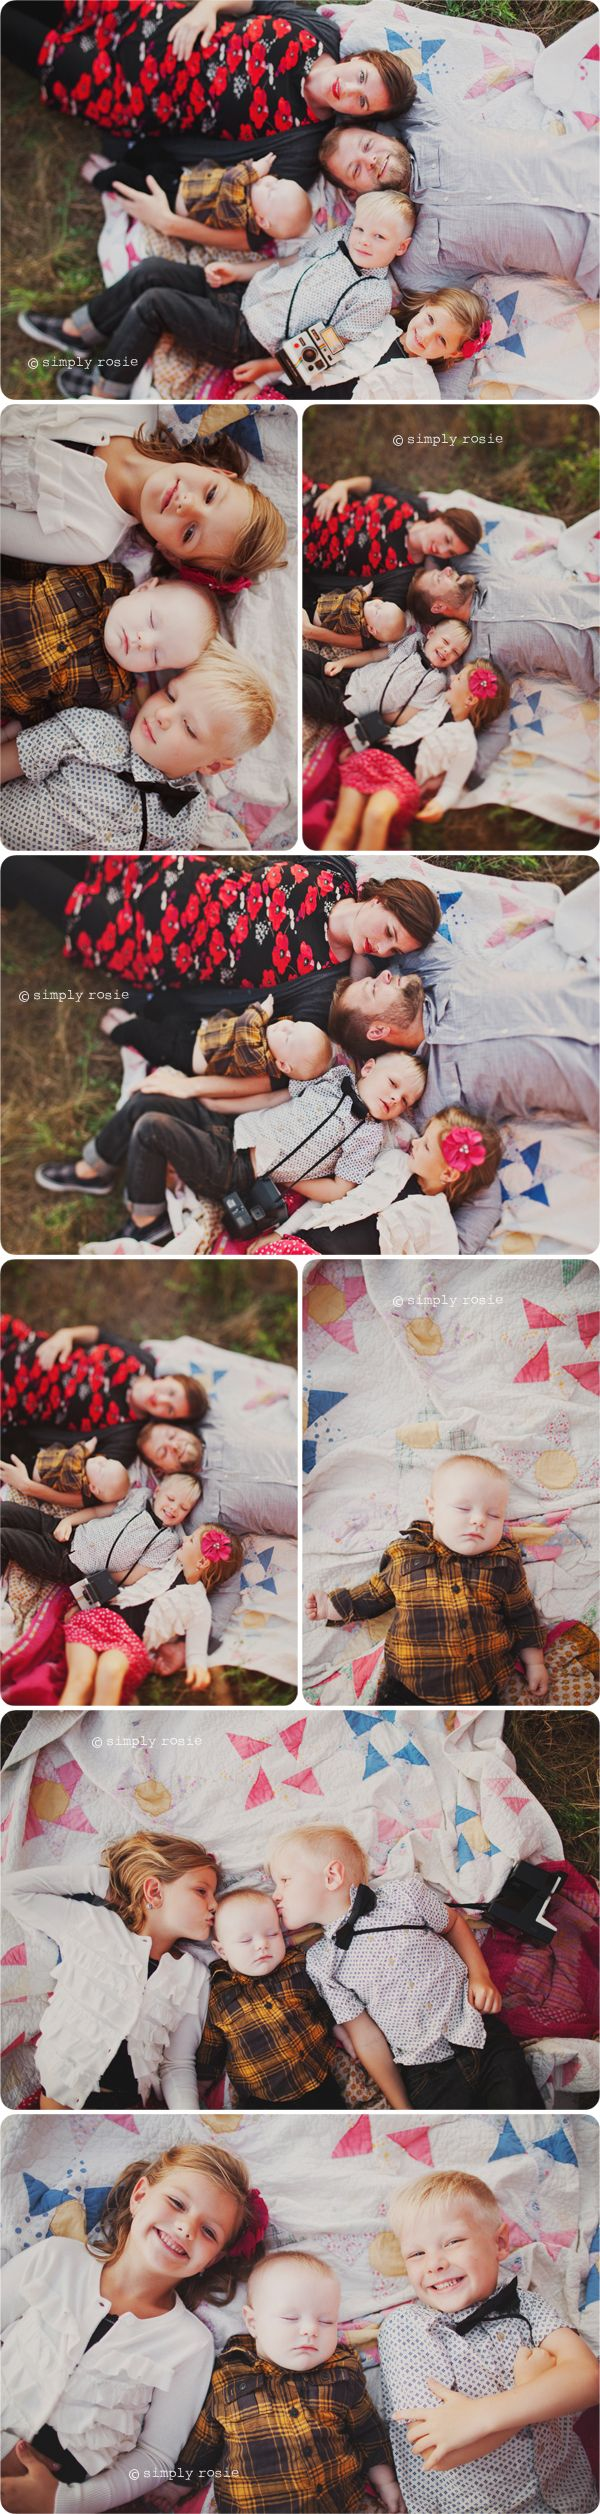 Family poses - I know these people. So weird to see them on the Popular Pinterest Board. Very beautiful photos.